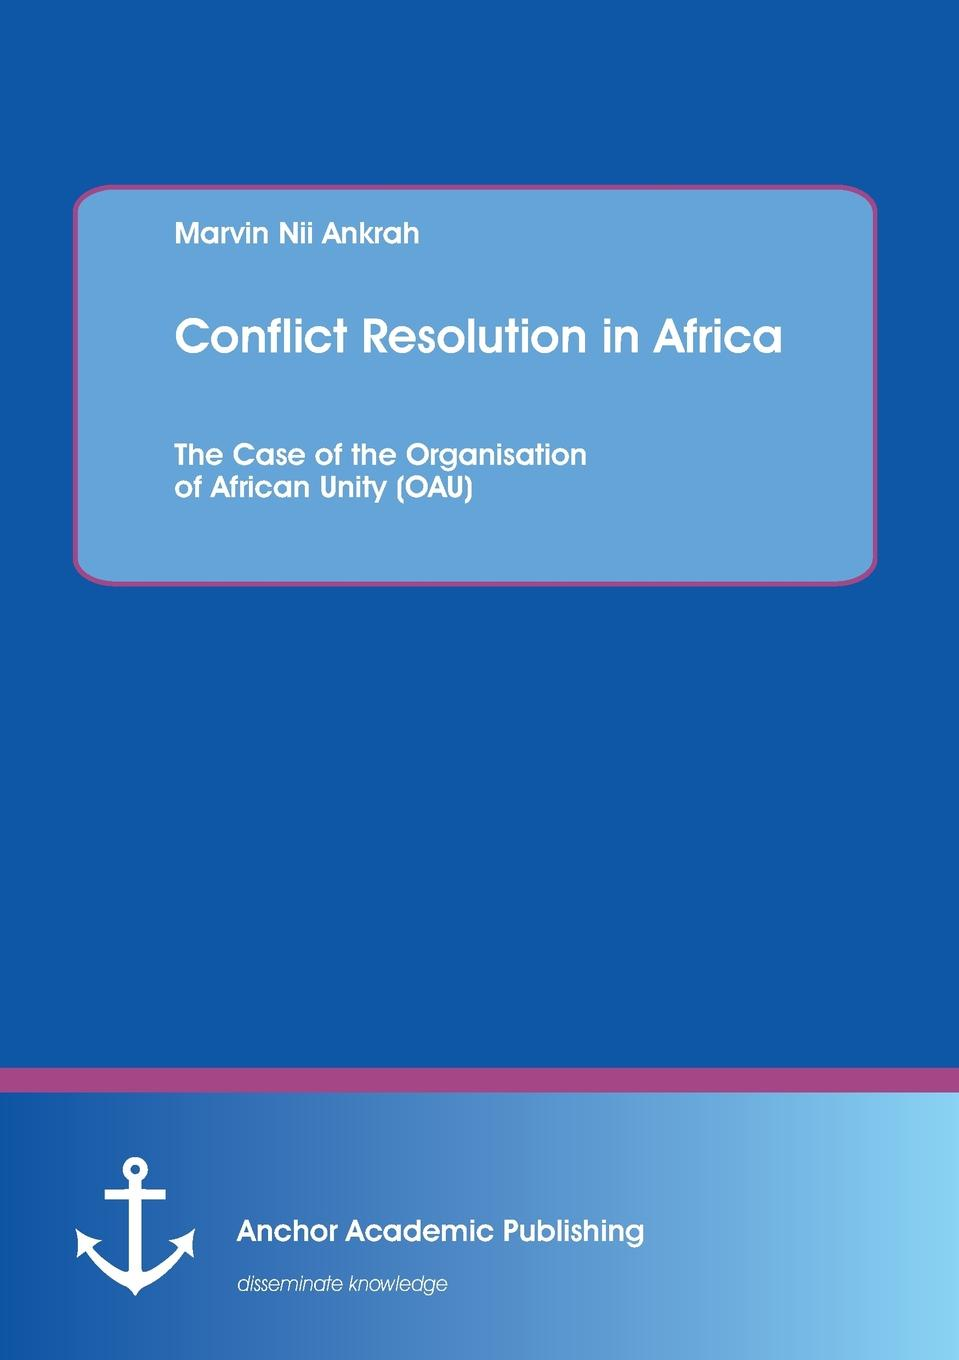 Marvin Nii Ankrah Conflict Resolution in Africa. The Case of the Organisation of African Unity (OAU)